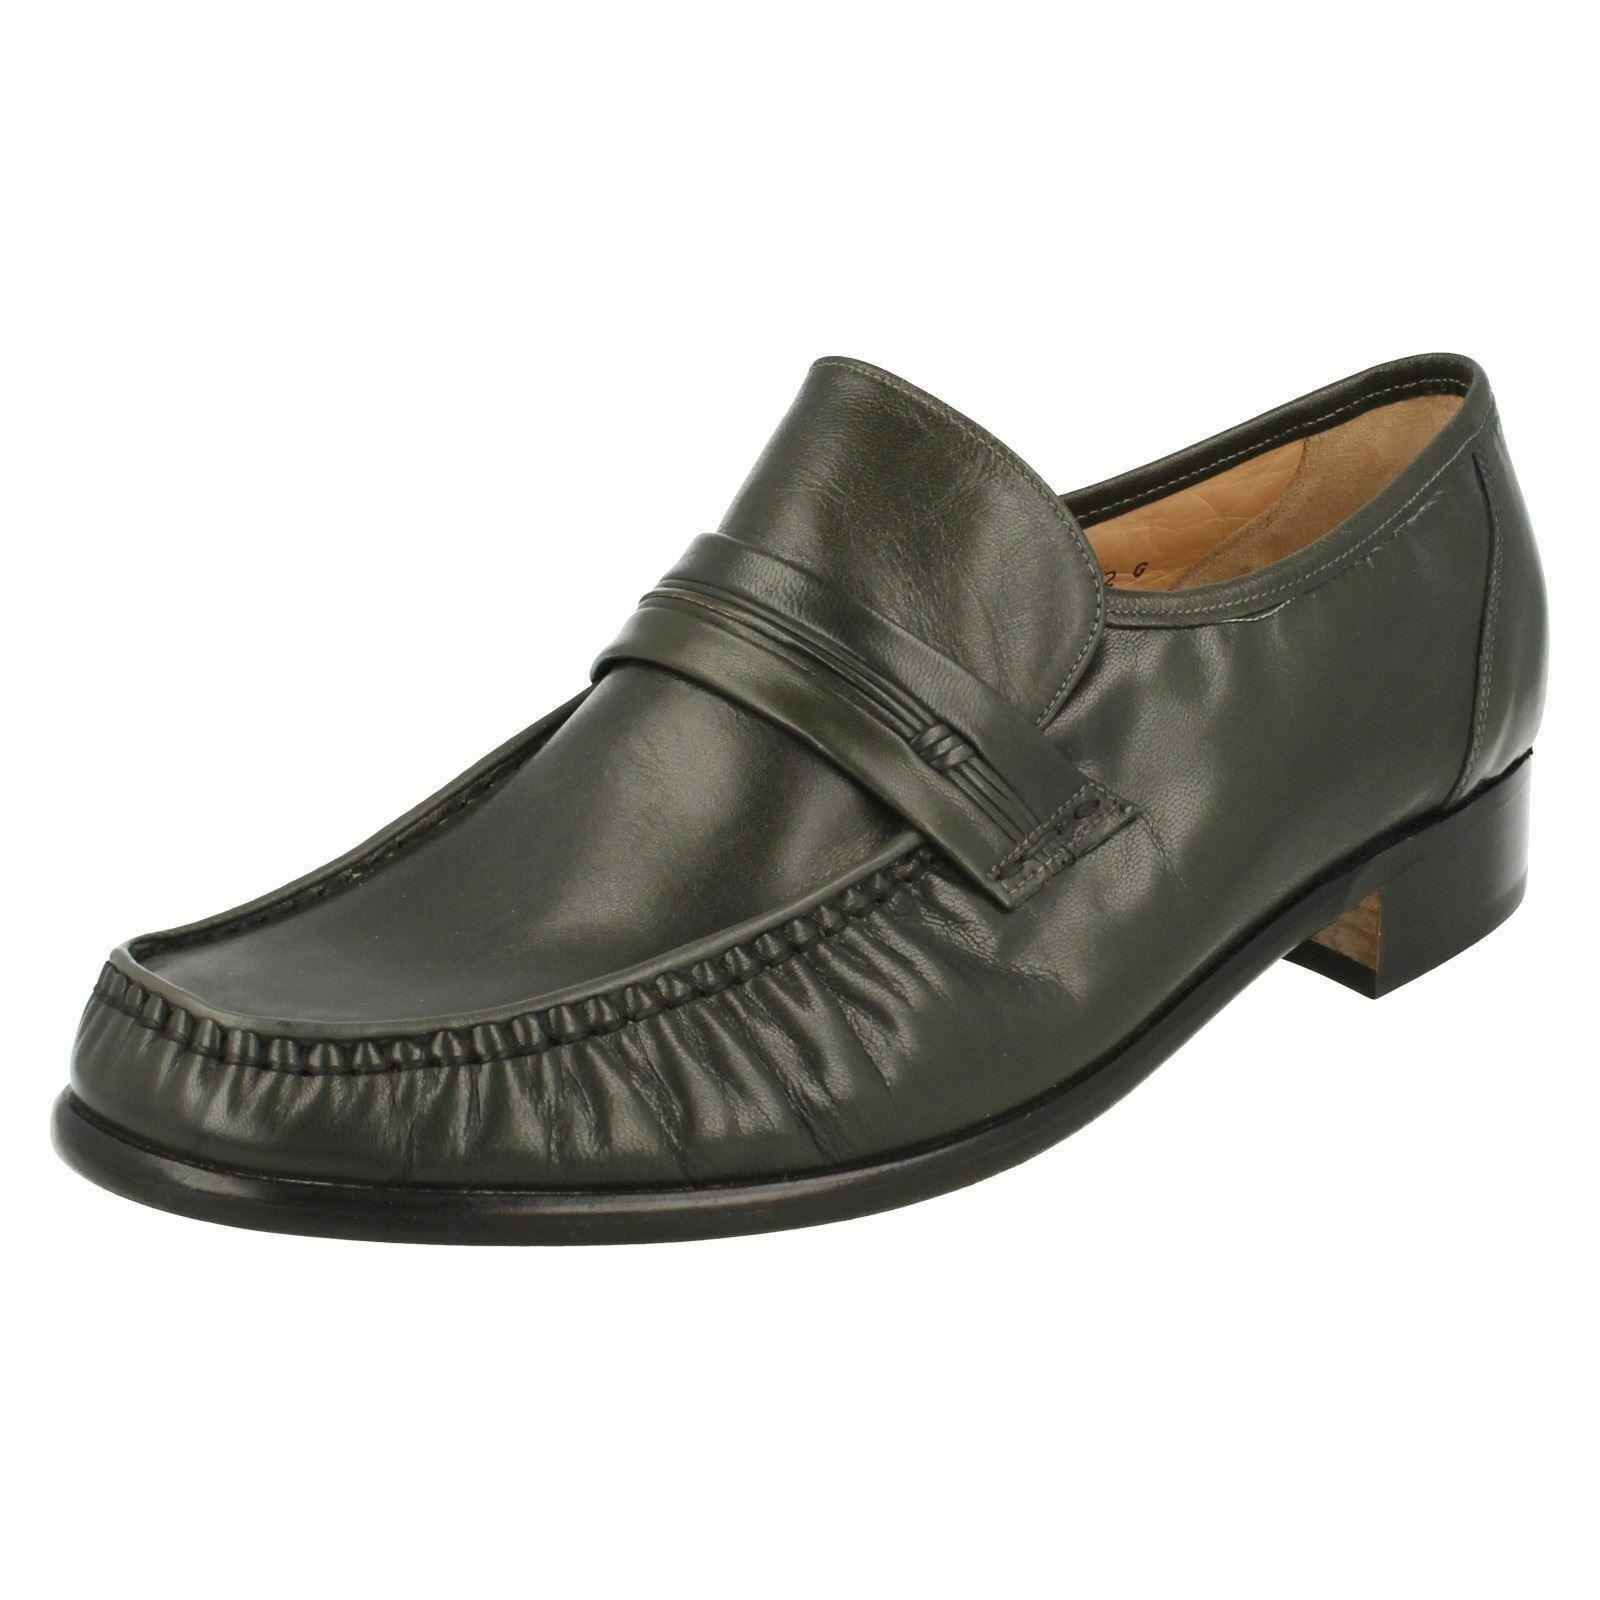 Grenson 'Clapham' Gents Bench Made Grey Leather Slip G On True Moccasin Loafers G Slip f0d514